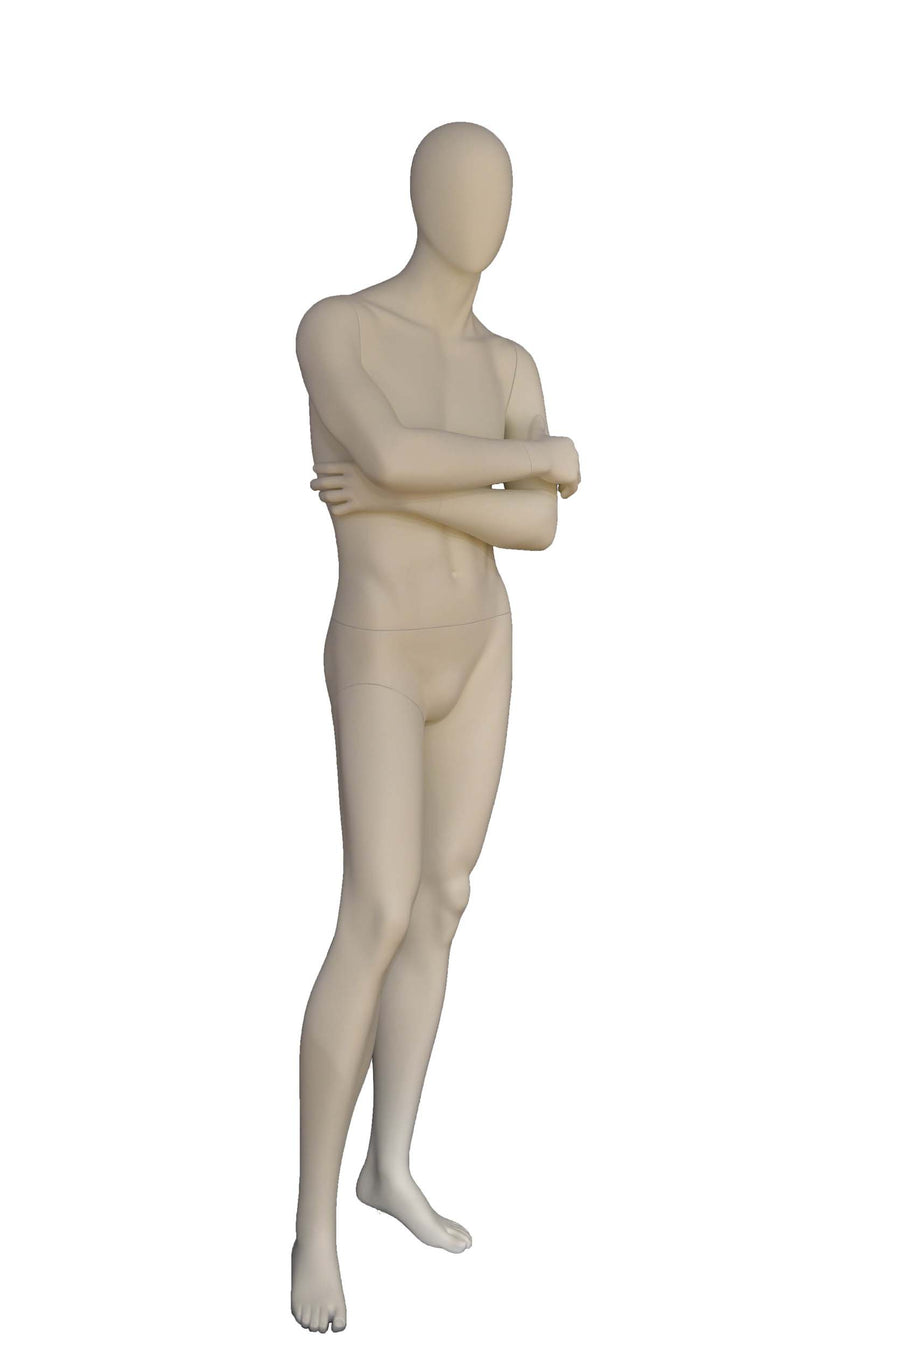 pure white male mannequin with smooth face, arms crossed at chest, and right leg slightly forward